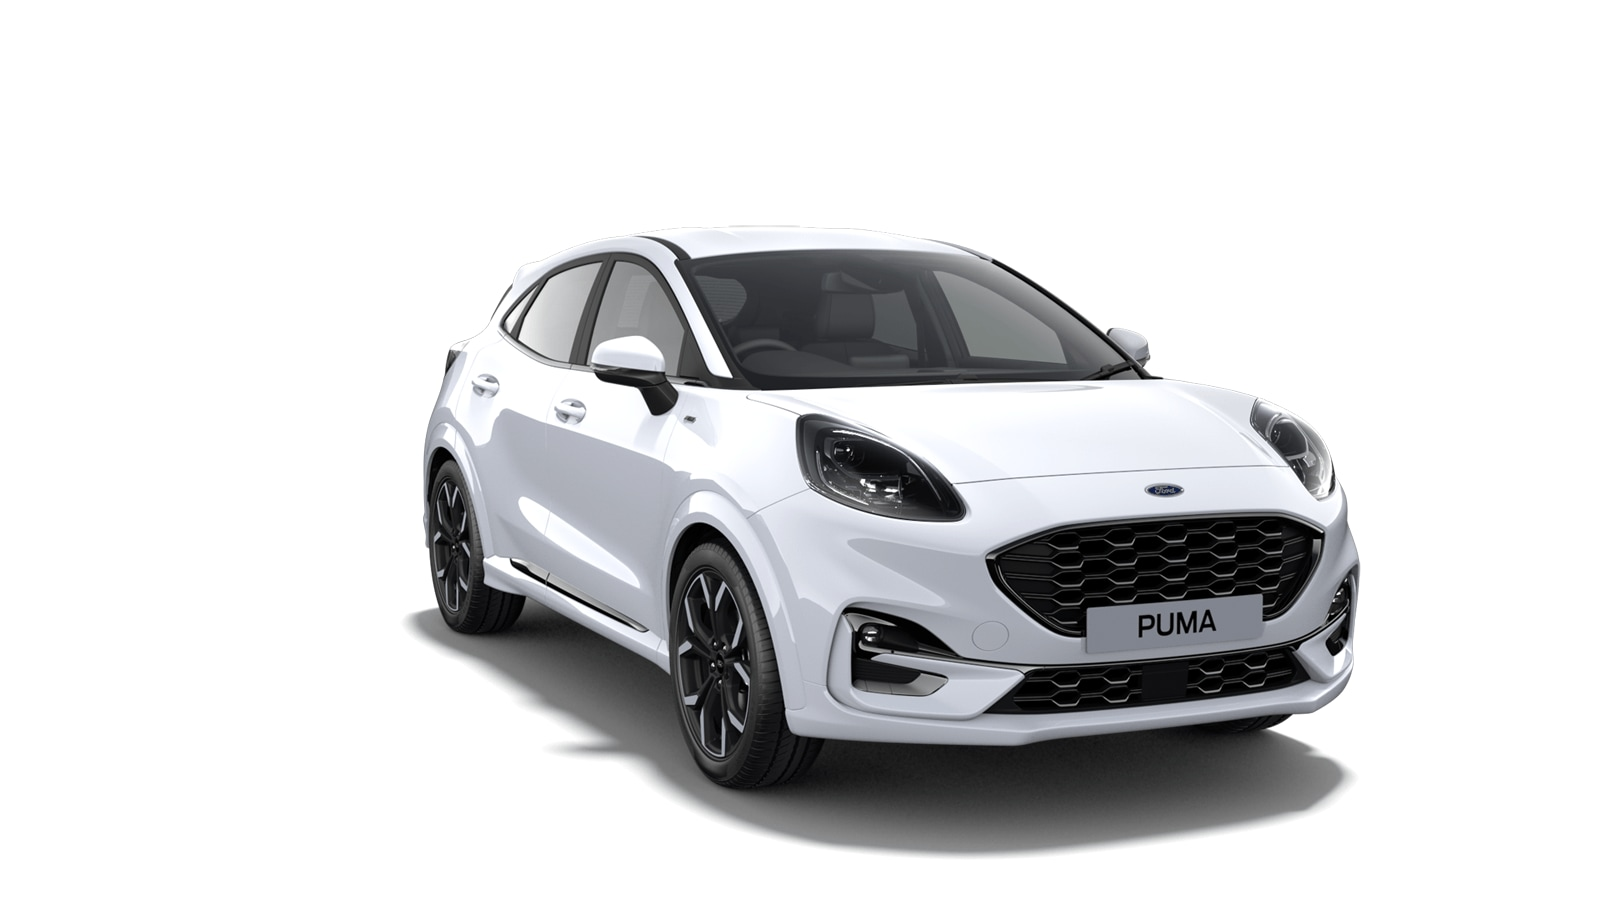 New Ford Puma ST-Line X First Edition 1.0L EcoBoost Hybrid (mHEV) 125PS at Browne & Day